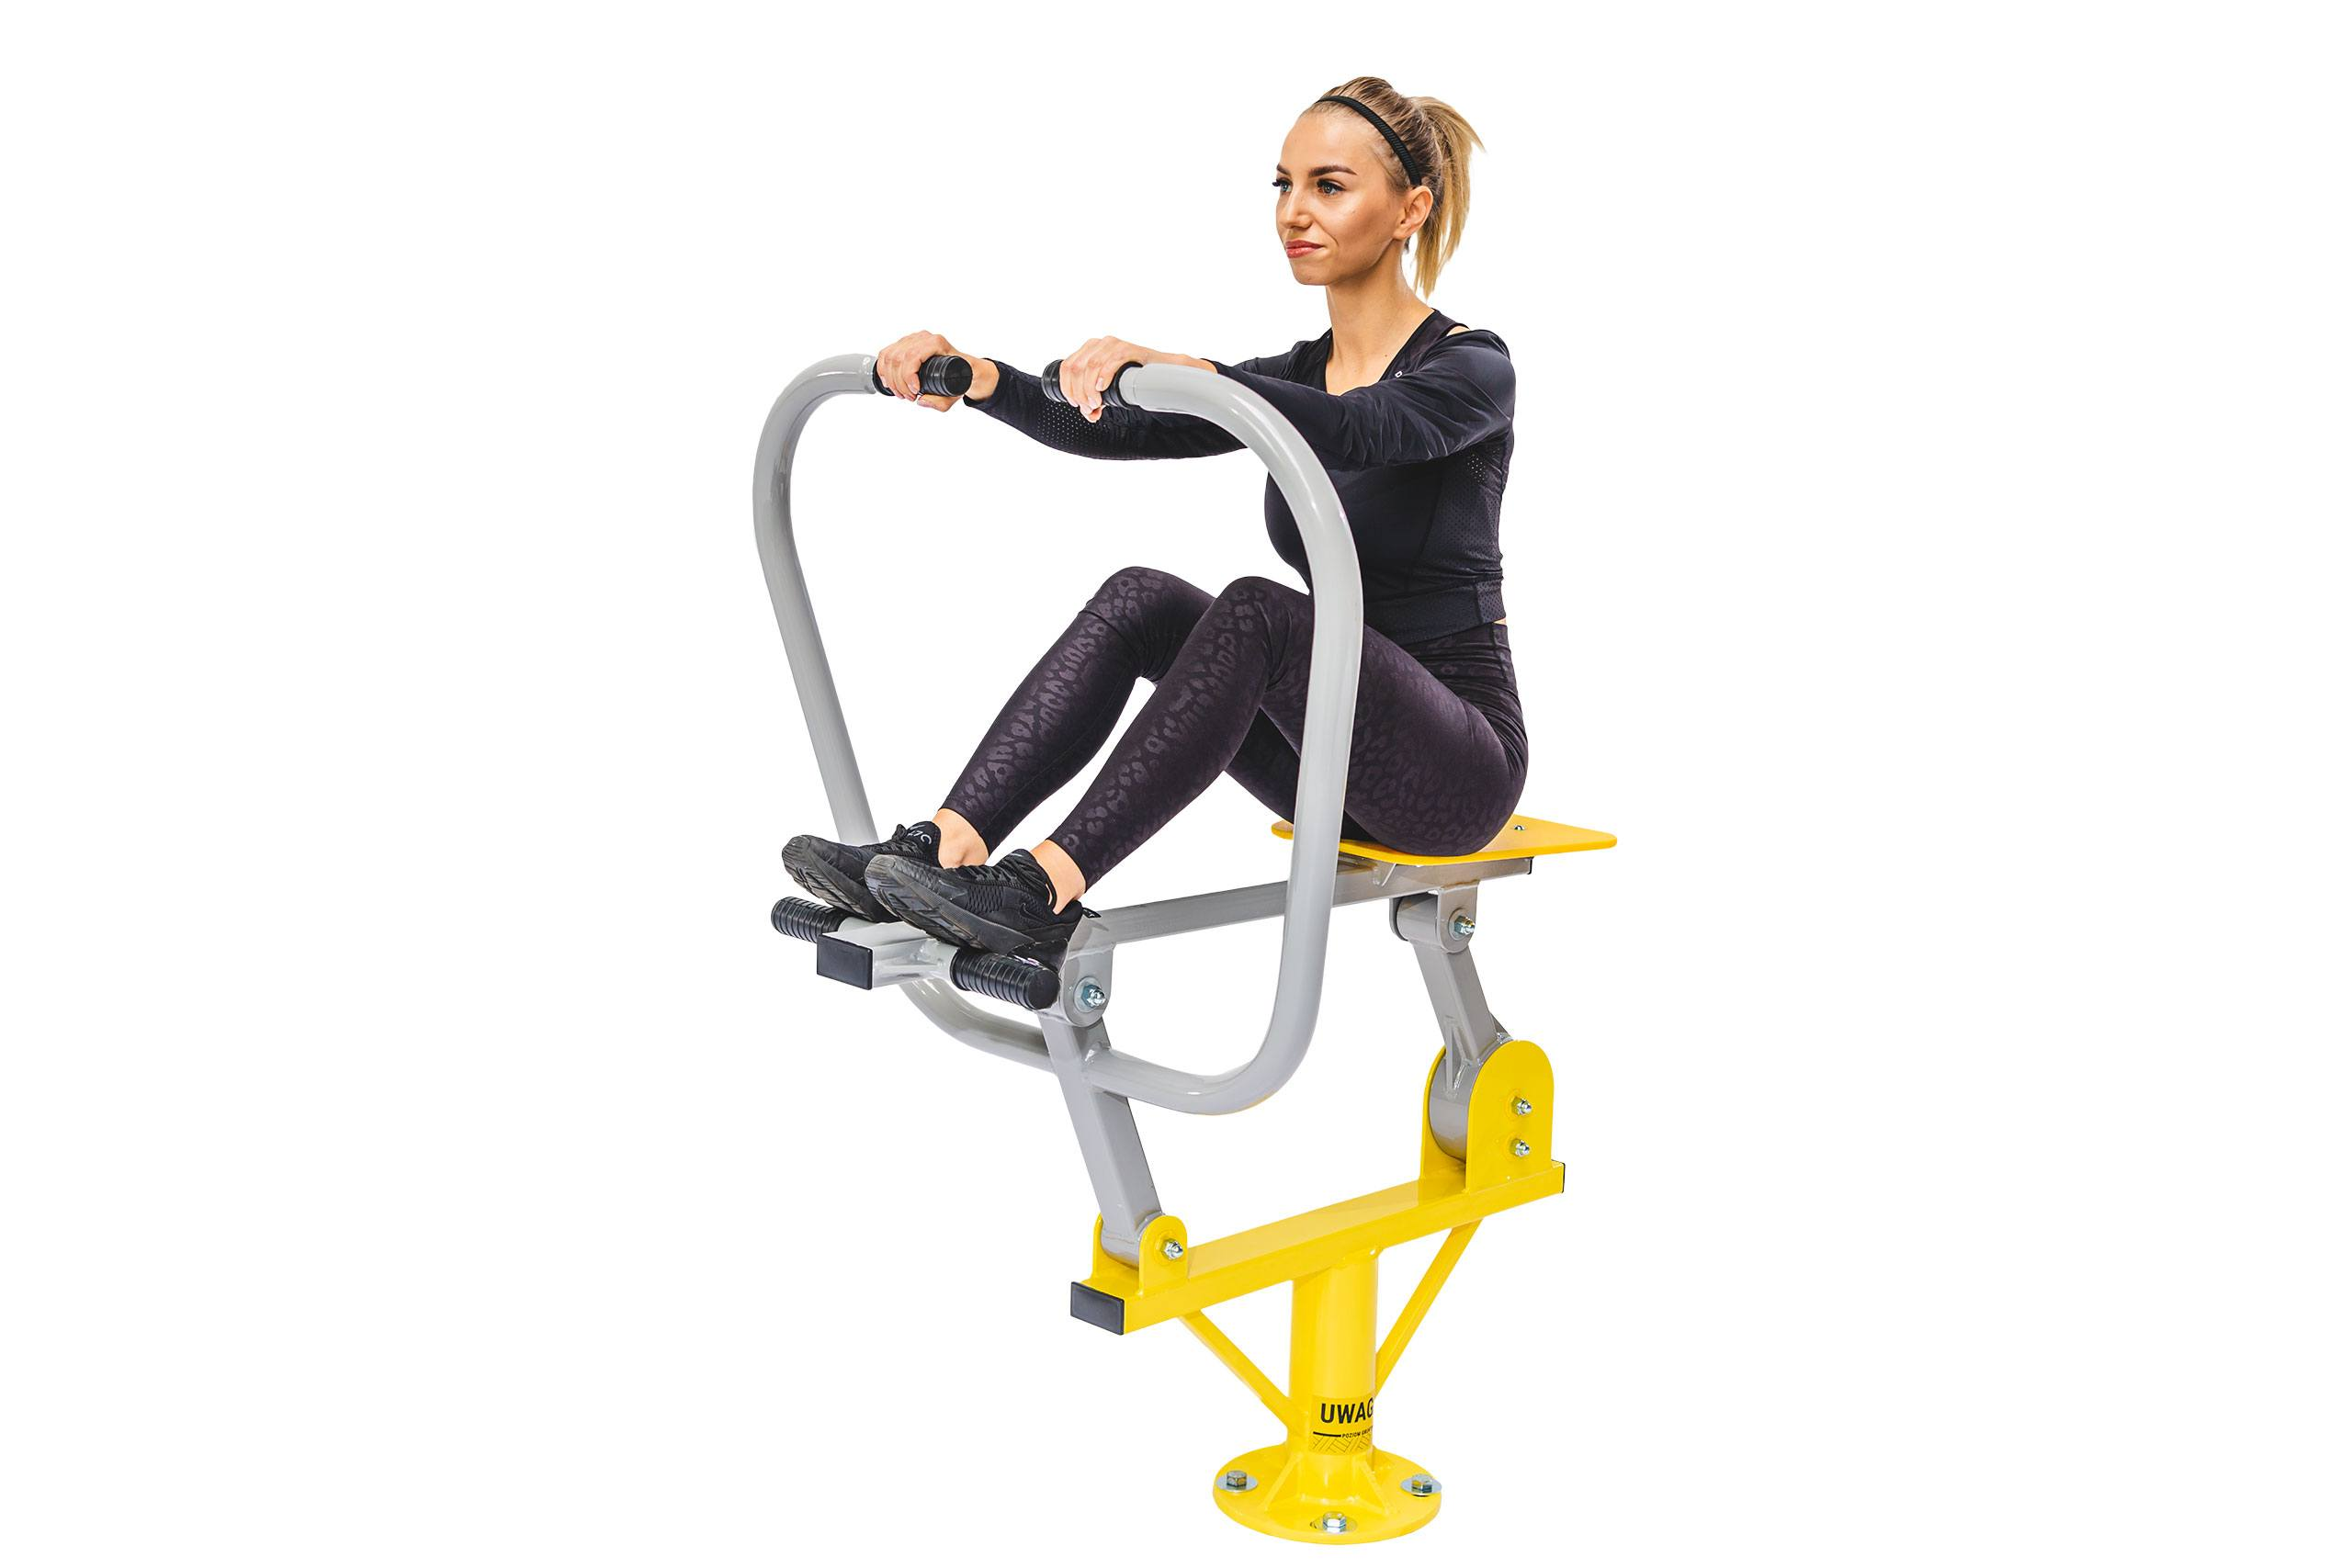 Rower outdoor gym workout